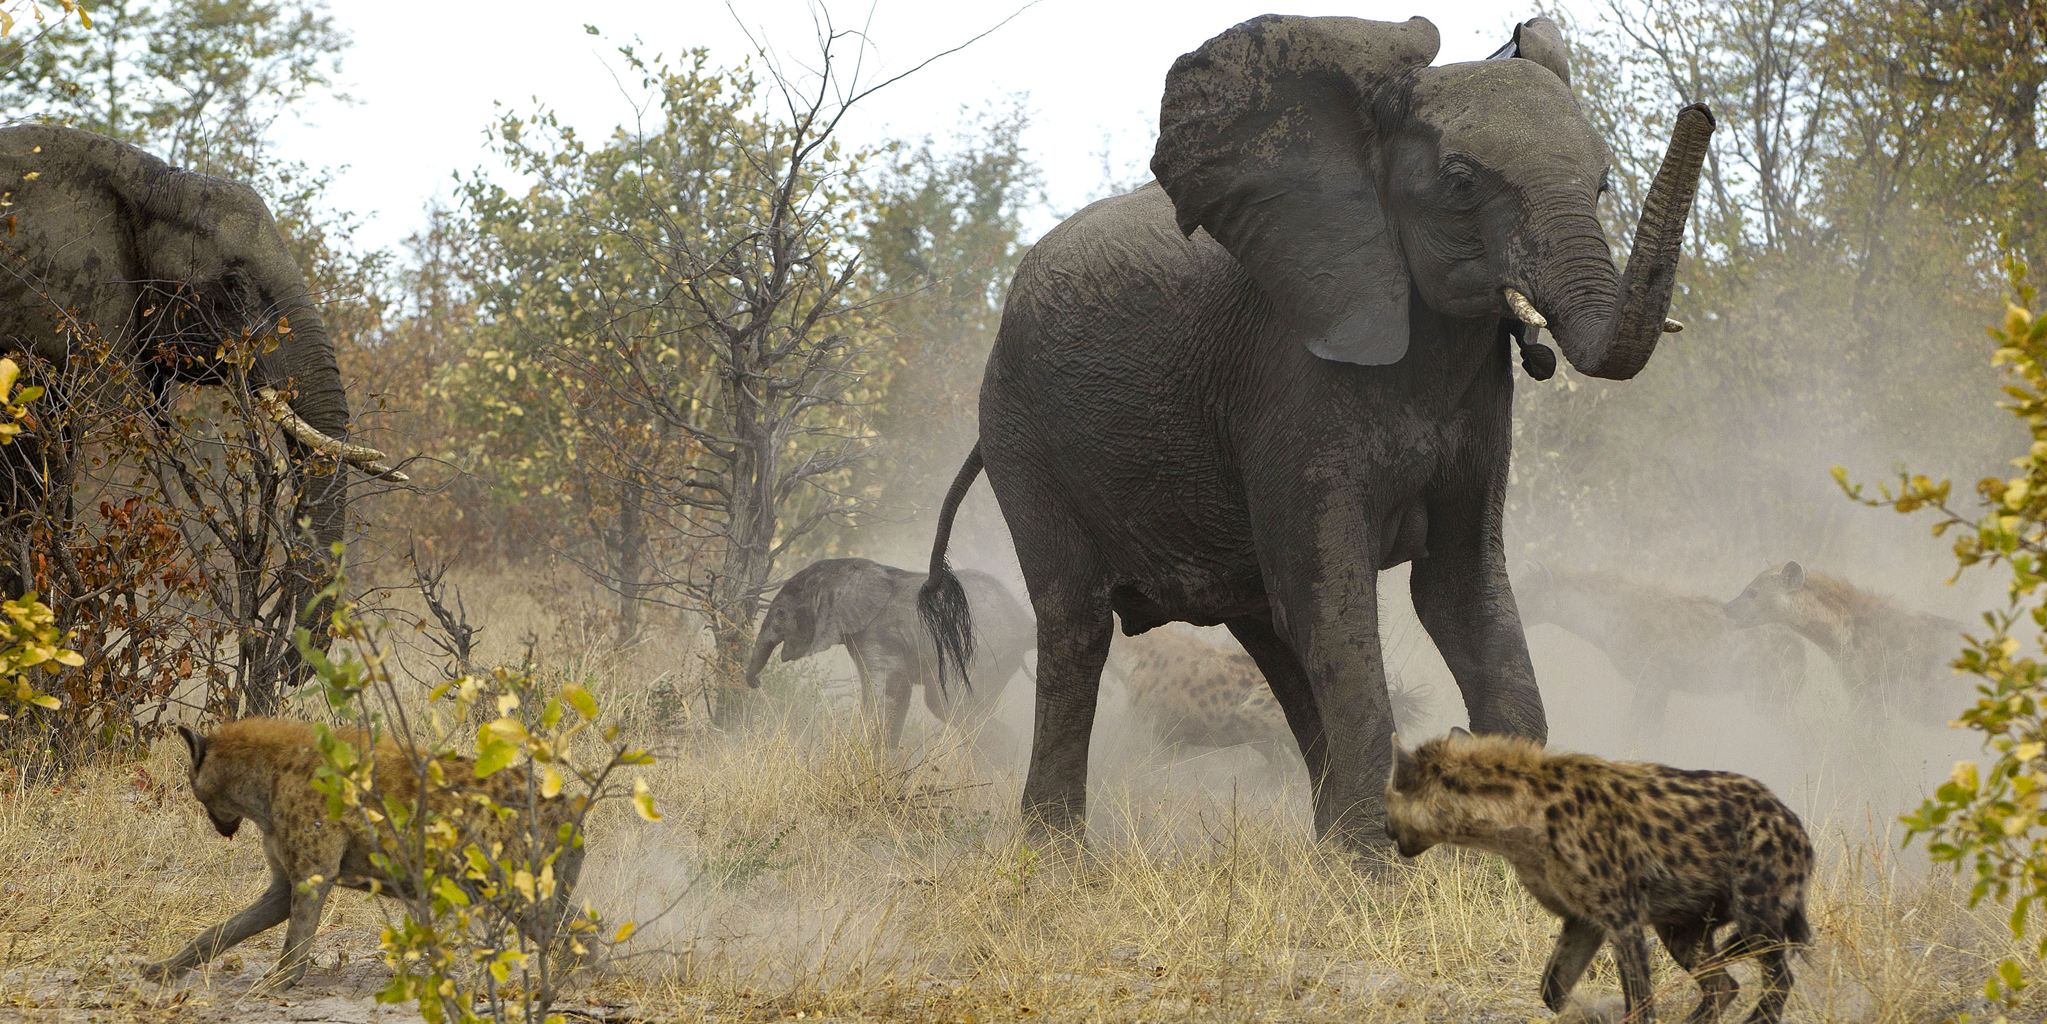 Elephant protecting its baby calf from hyenas | A Writer ...